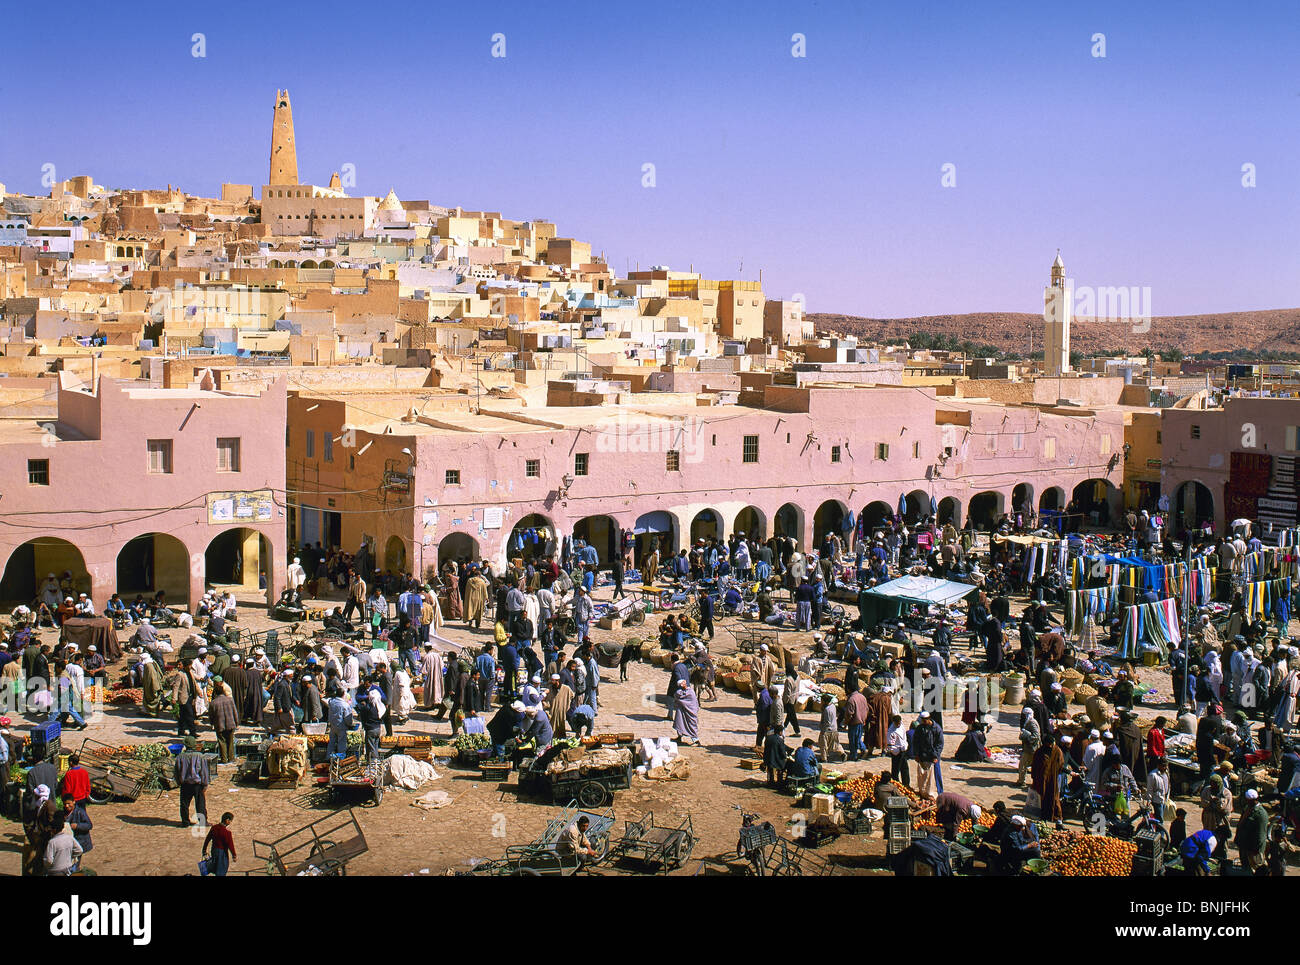 algeria local dating Looking for cheap flights to algiers, algeria from your destination  city of  algeria lies on the banks of the mediterranean sea and has a rich history dating  from phoenician times  prices found by our users for local departures to algiers.